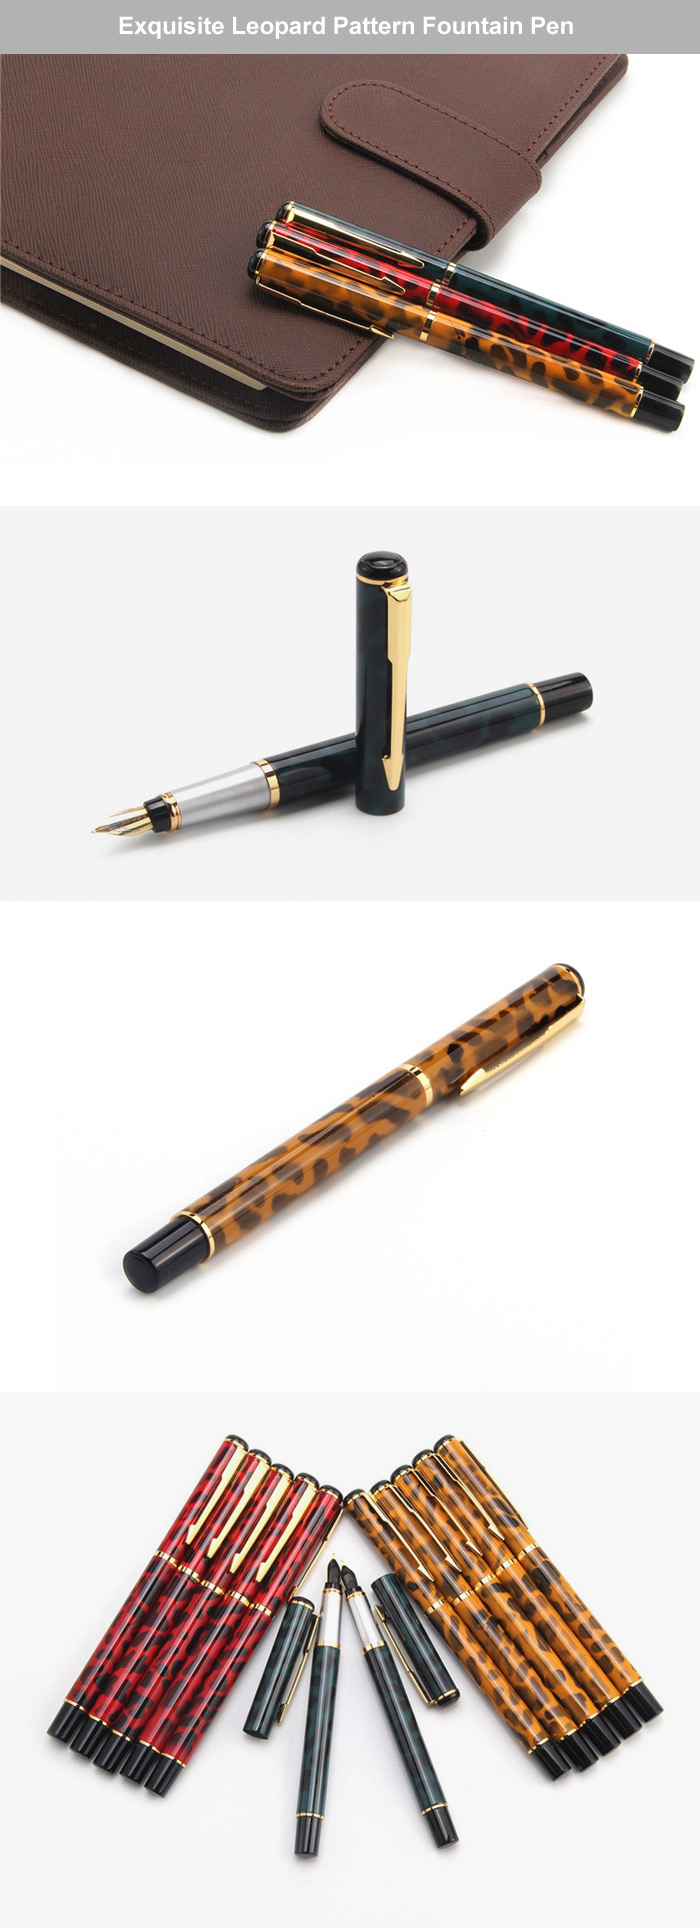 JINHAO Exquisite Leopard Pattern Fountain Pen Writing Stationery 15PCS